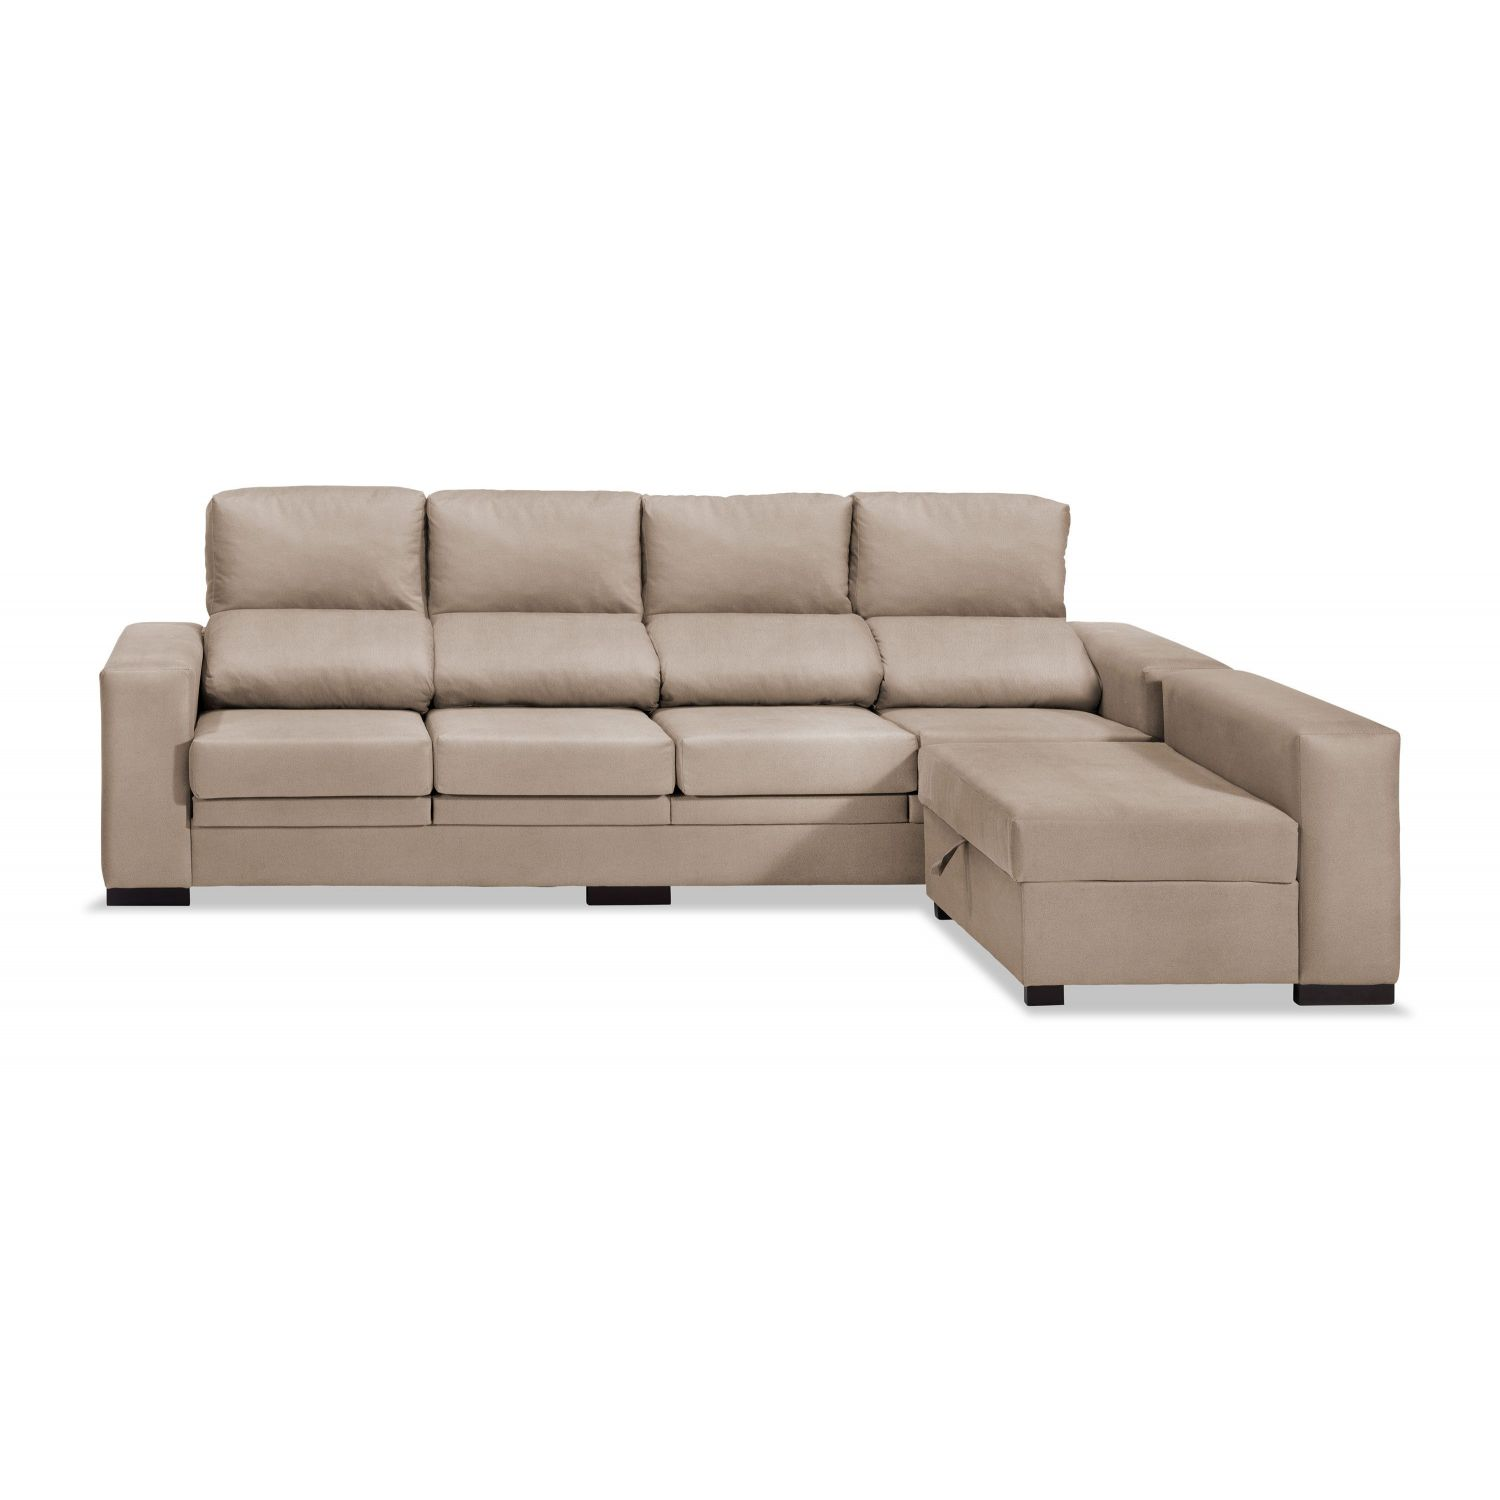 Sof chaise longue 4 plazas beige 270 cm for Sofas 4 plazas conforama